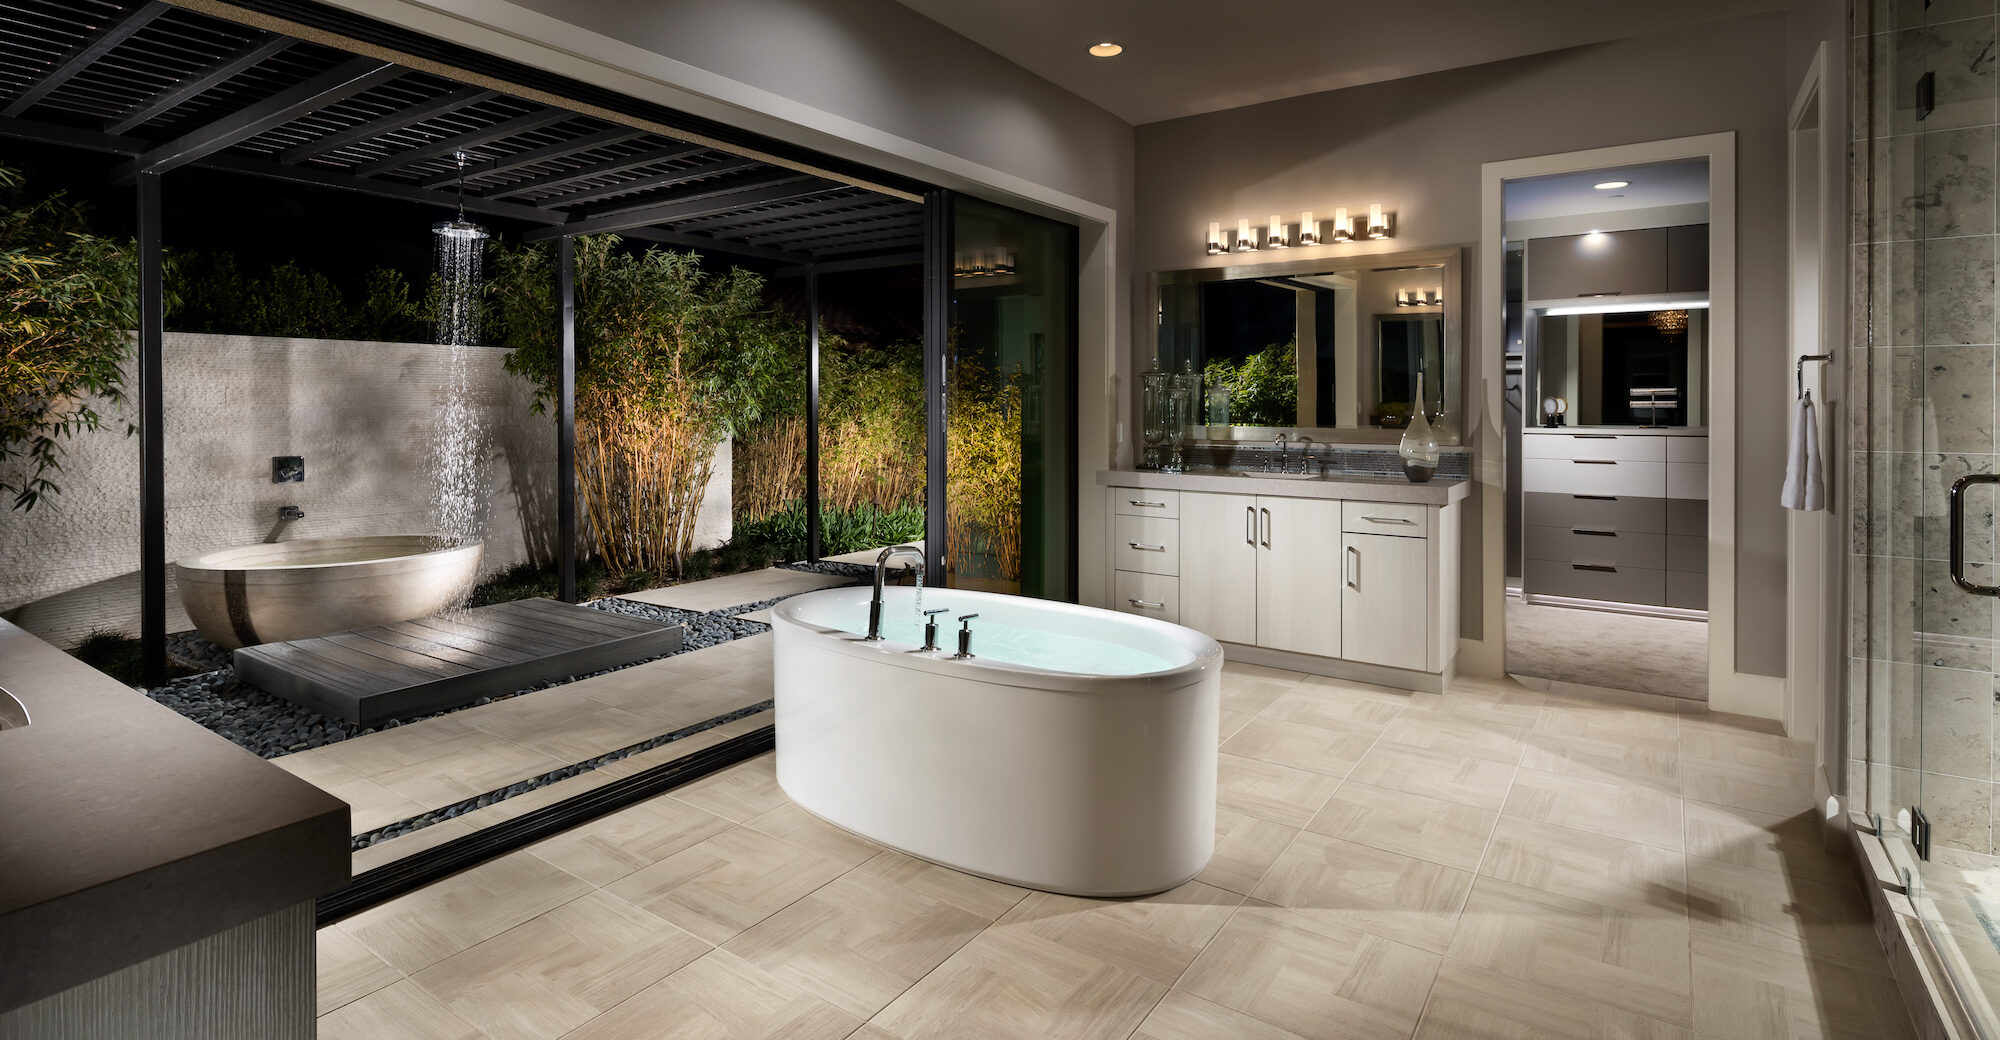 Luxury bathroom with outdoor shower